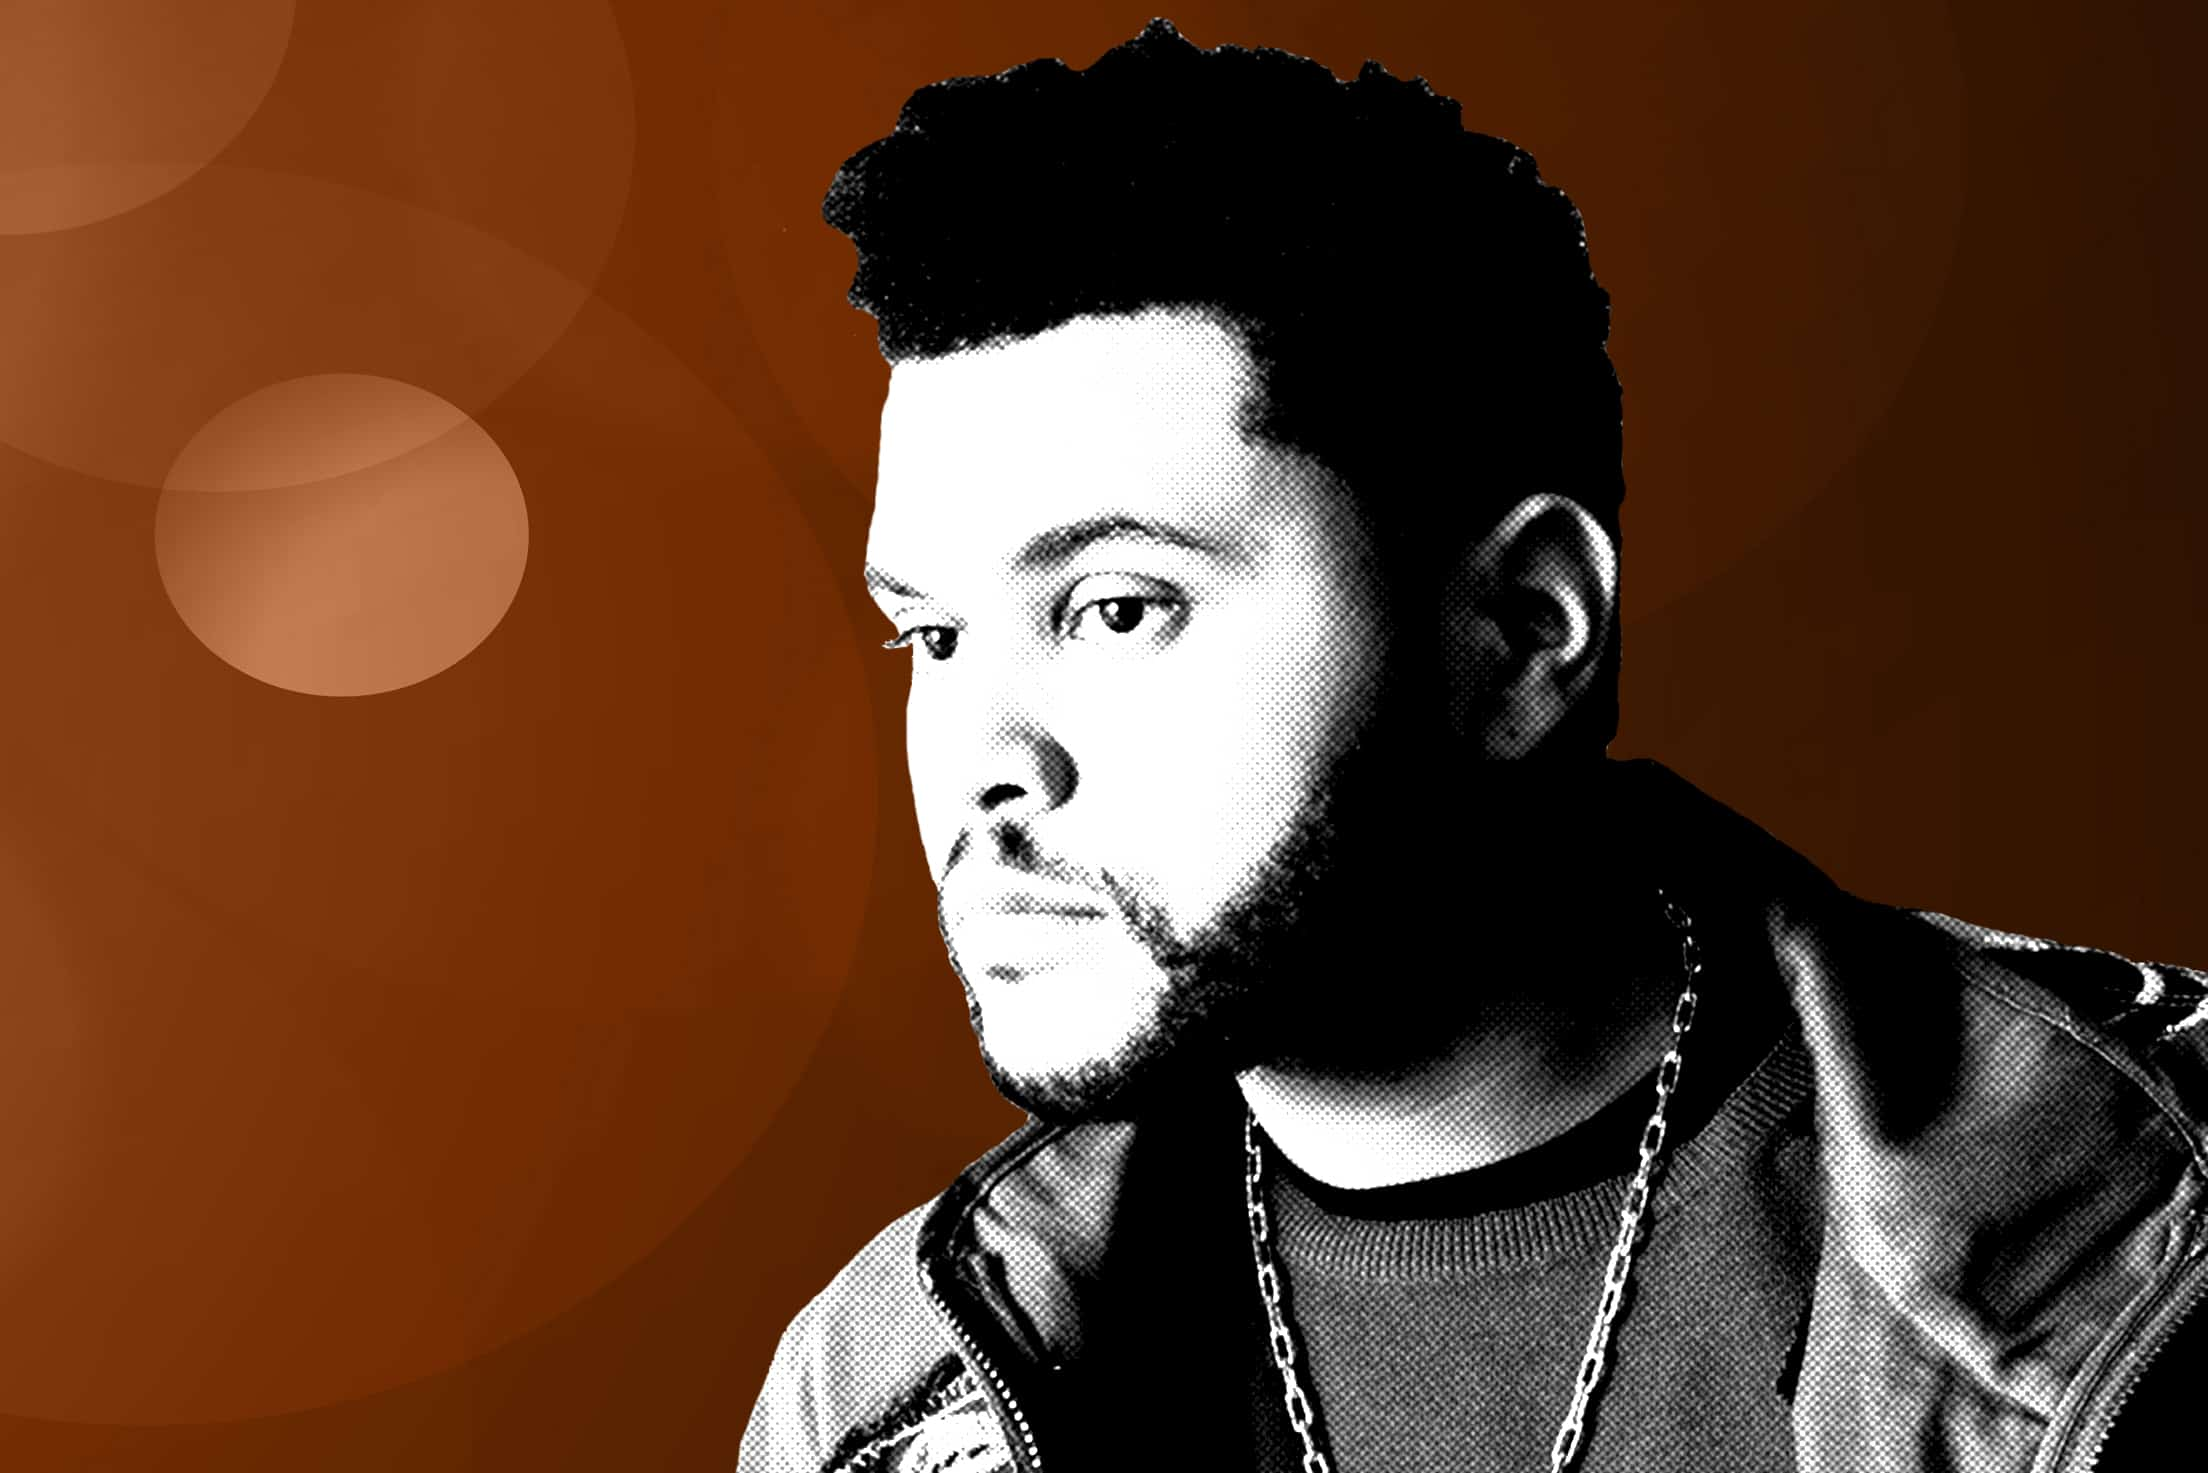 HERE'S WHERE THE WEEKND IS DONATING $1 MILLION AMID CORONAVIRUS PANDEMIC